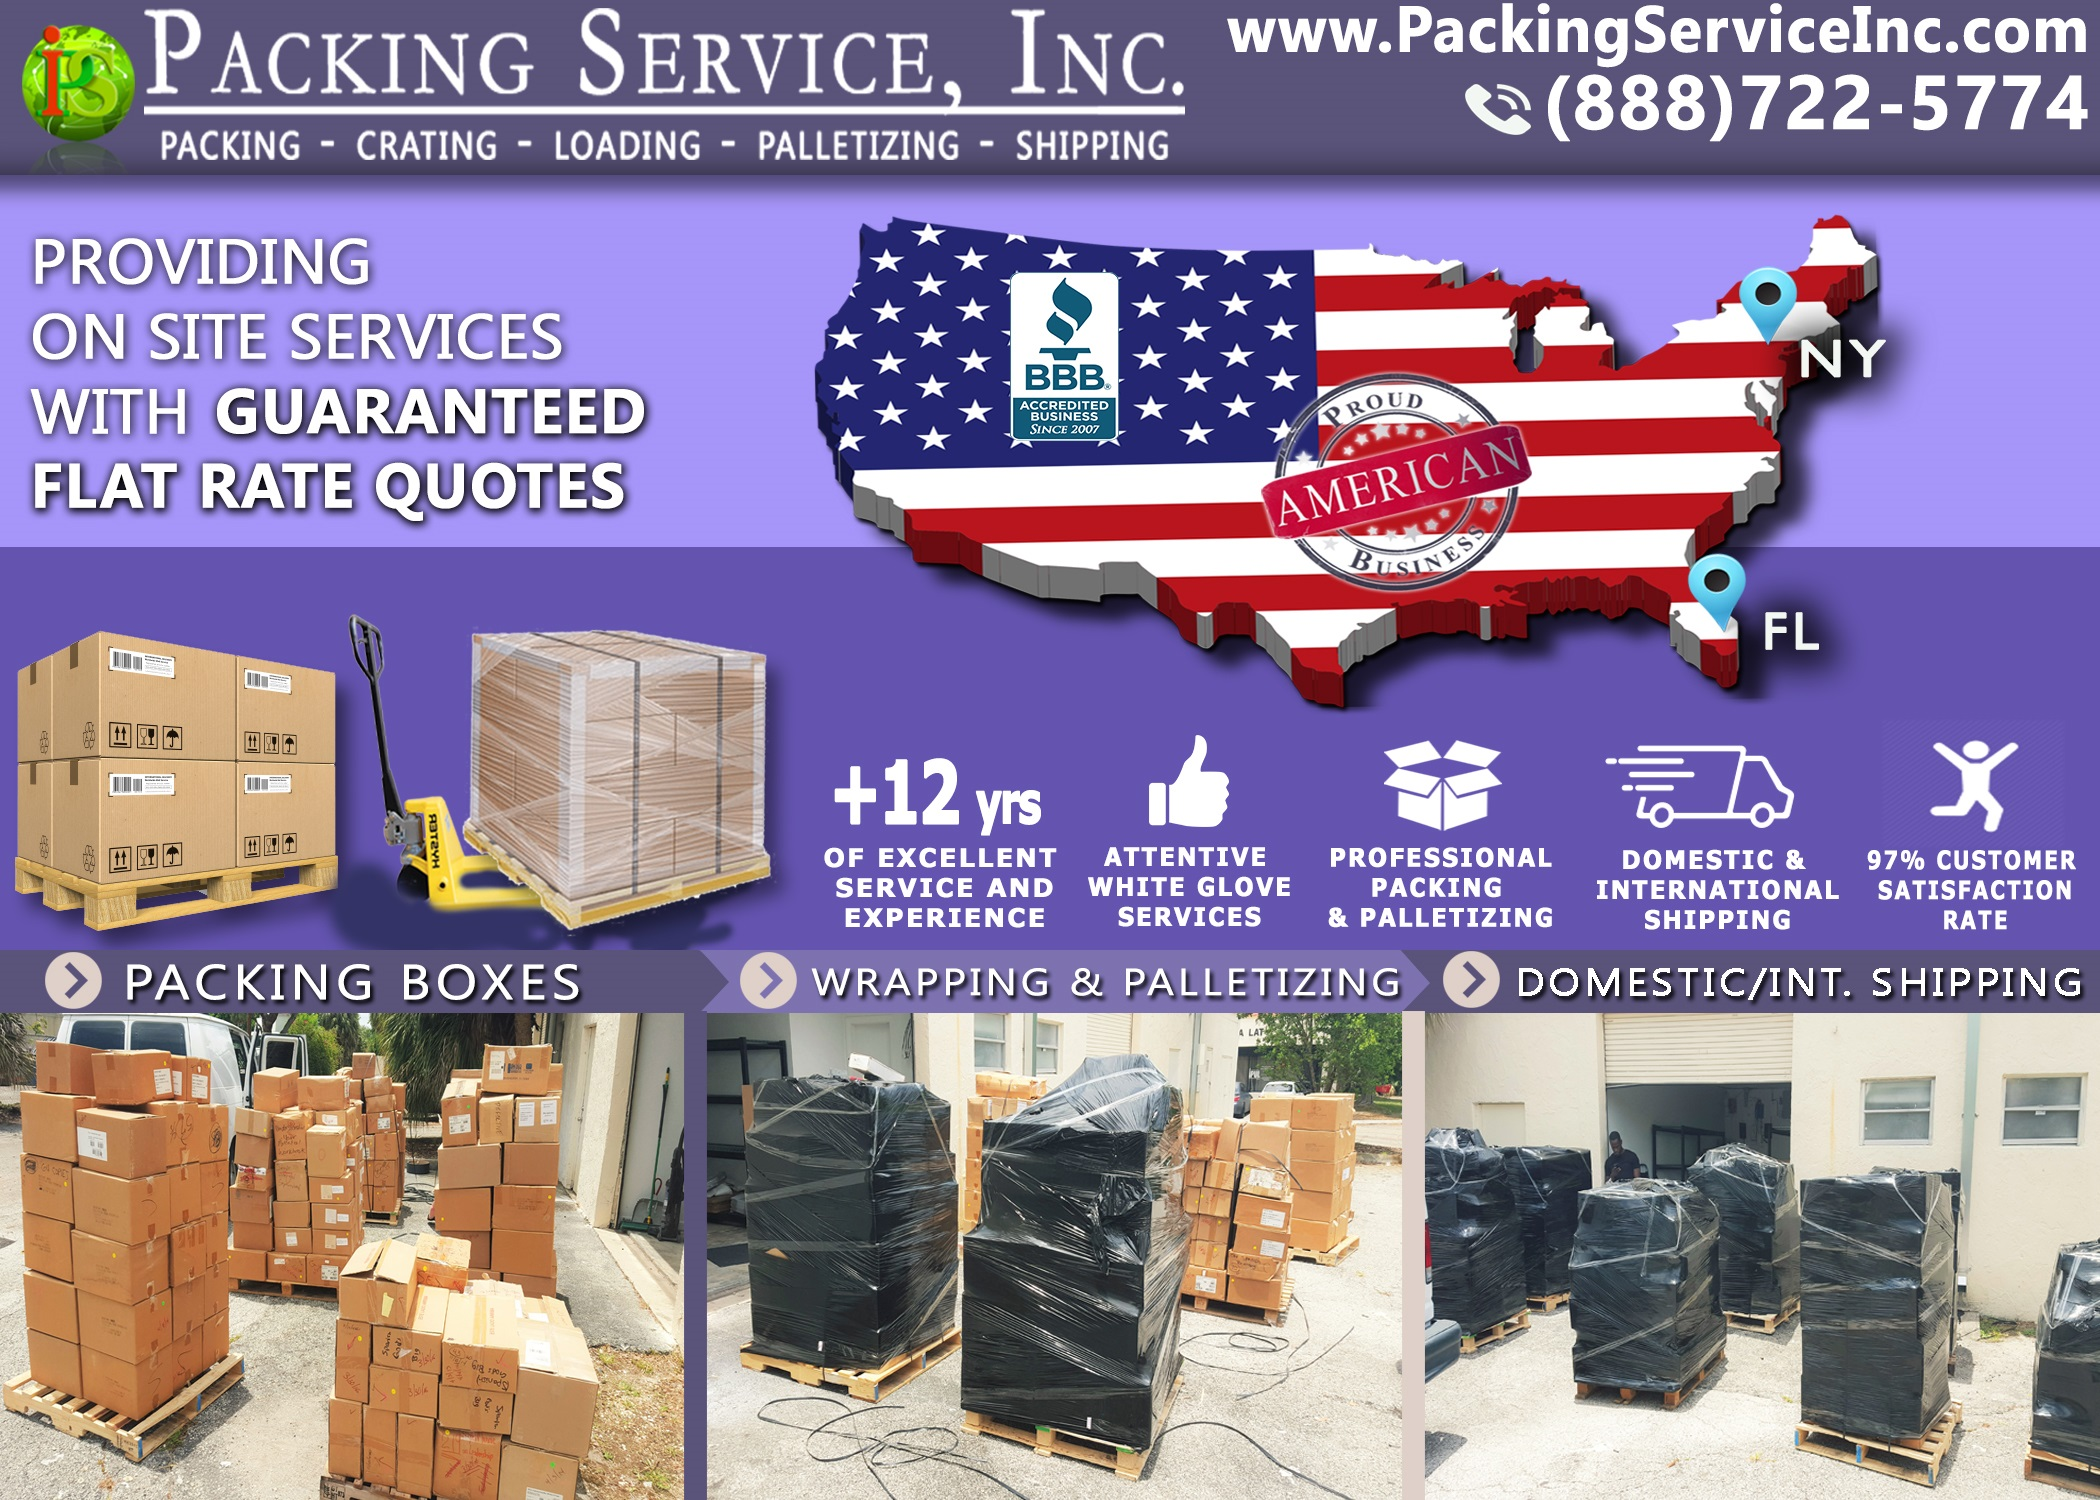 Packing Boxes, Palletizing and Shipping from Fort Lauderdale, Florida to New York, NY with Packing Service, Inc. - 774